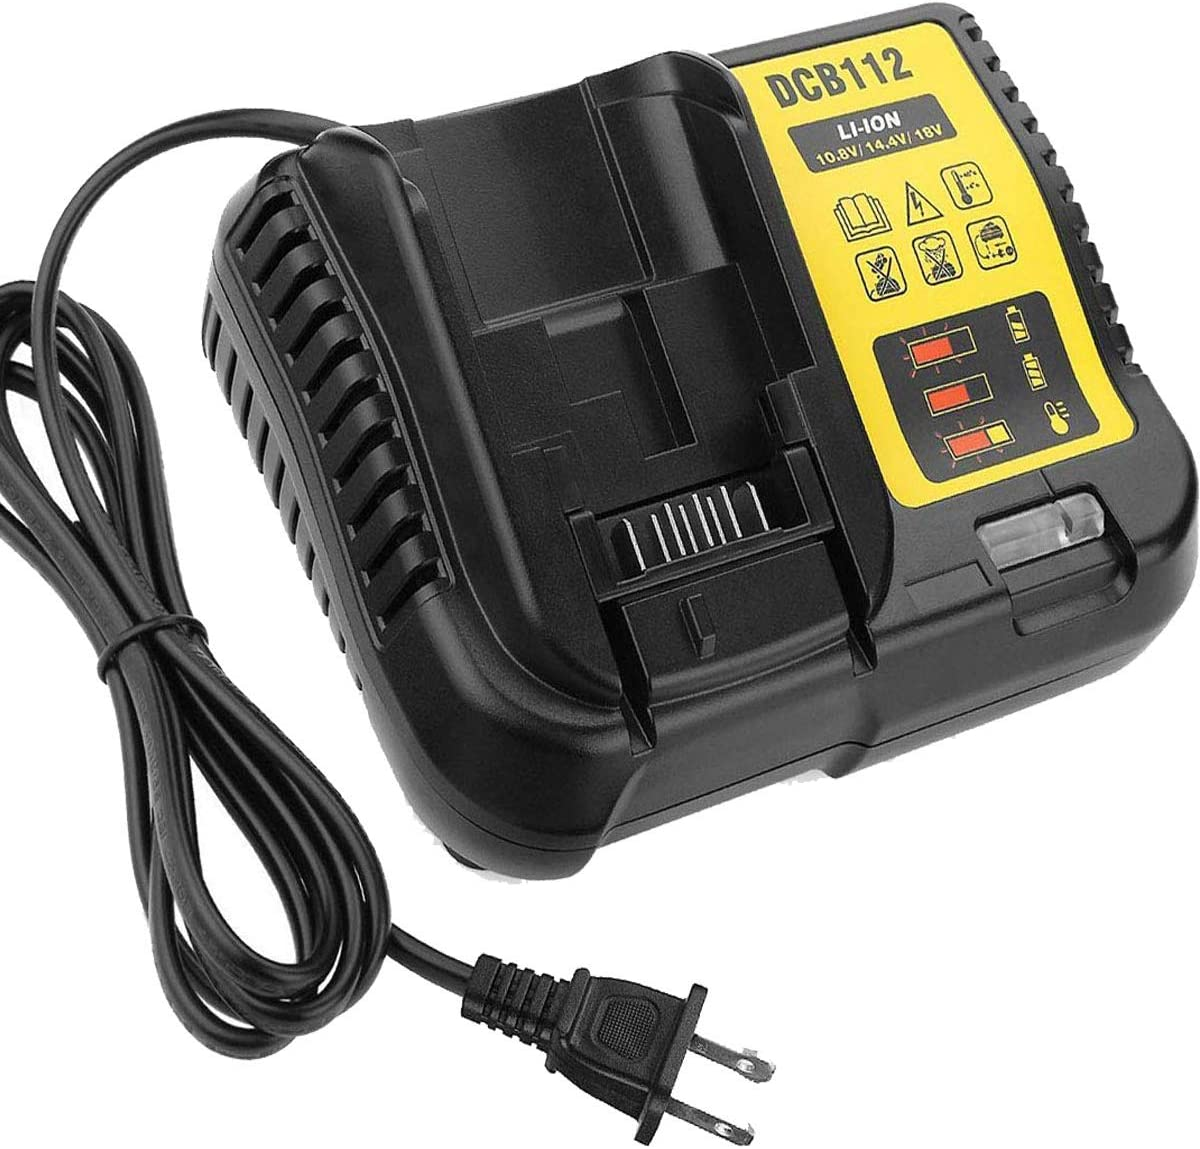 DCB105 Replacement Charger for Dewalt 12V//20V MAX Lithium Battery Compatible with DCB101 DCB115 DCB107 DCB205 DCB203 DCB204 DCB206 DCB201 DCB120 DCB127 Compact Drill Driver Batteries